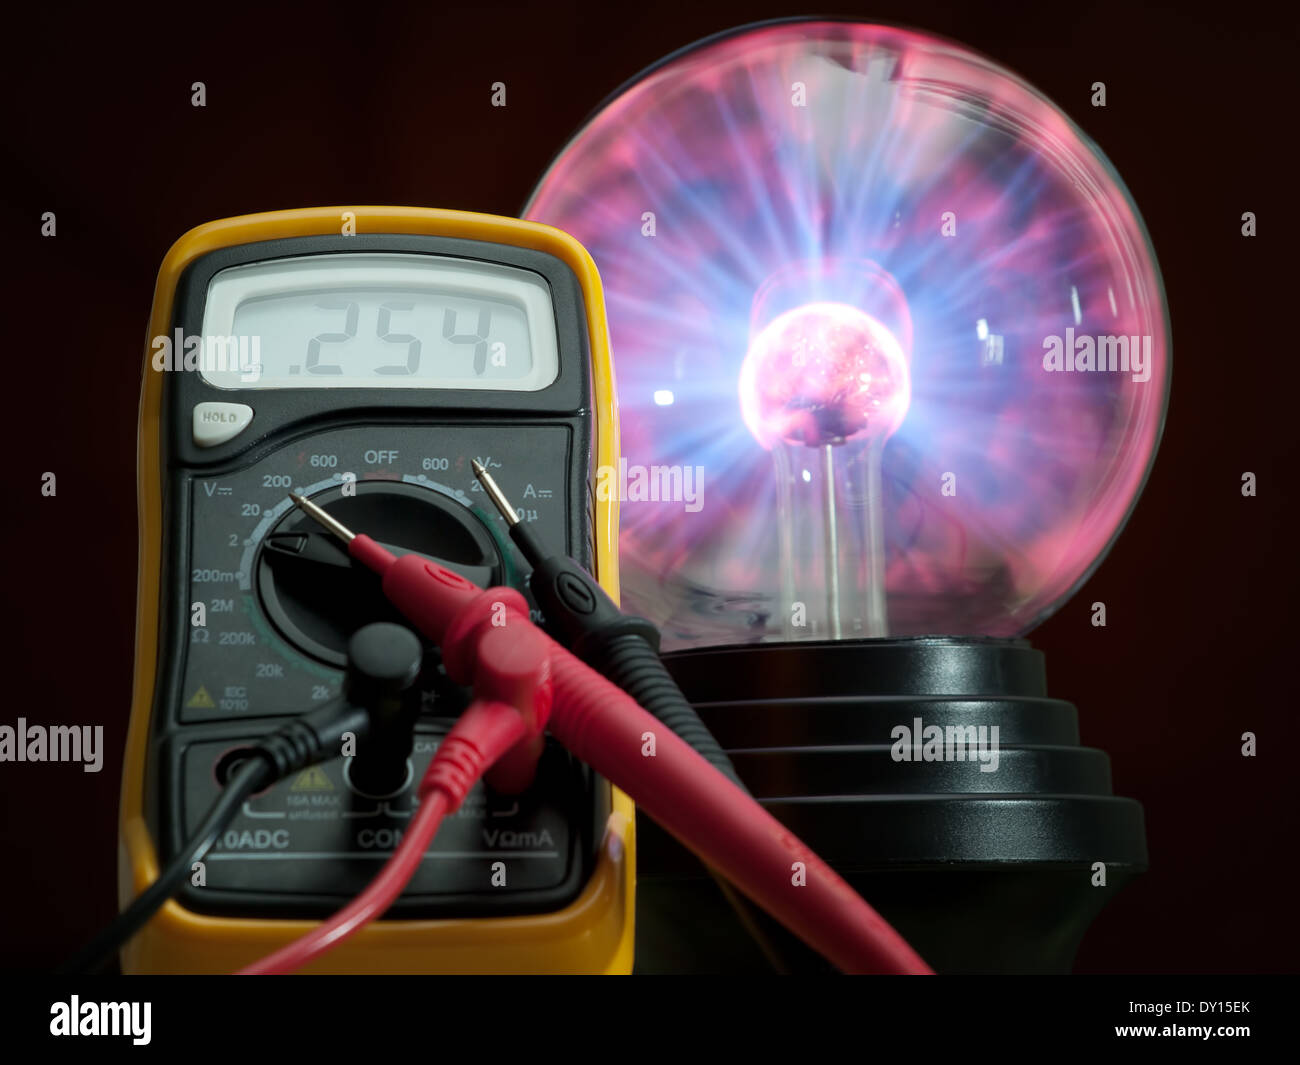 Digital multimeter and high voltage plasma lamp in the background. - Stock Image